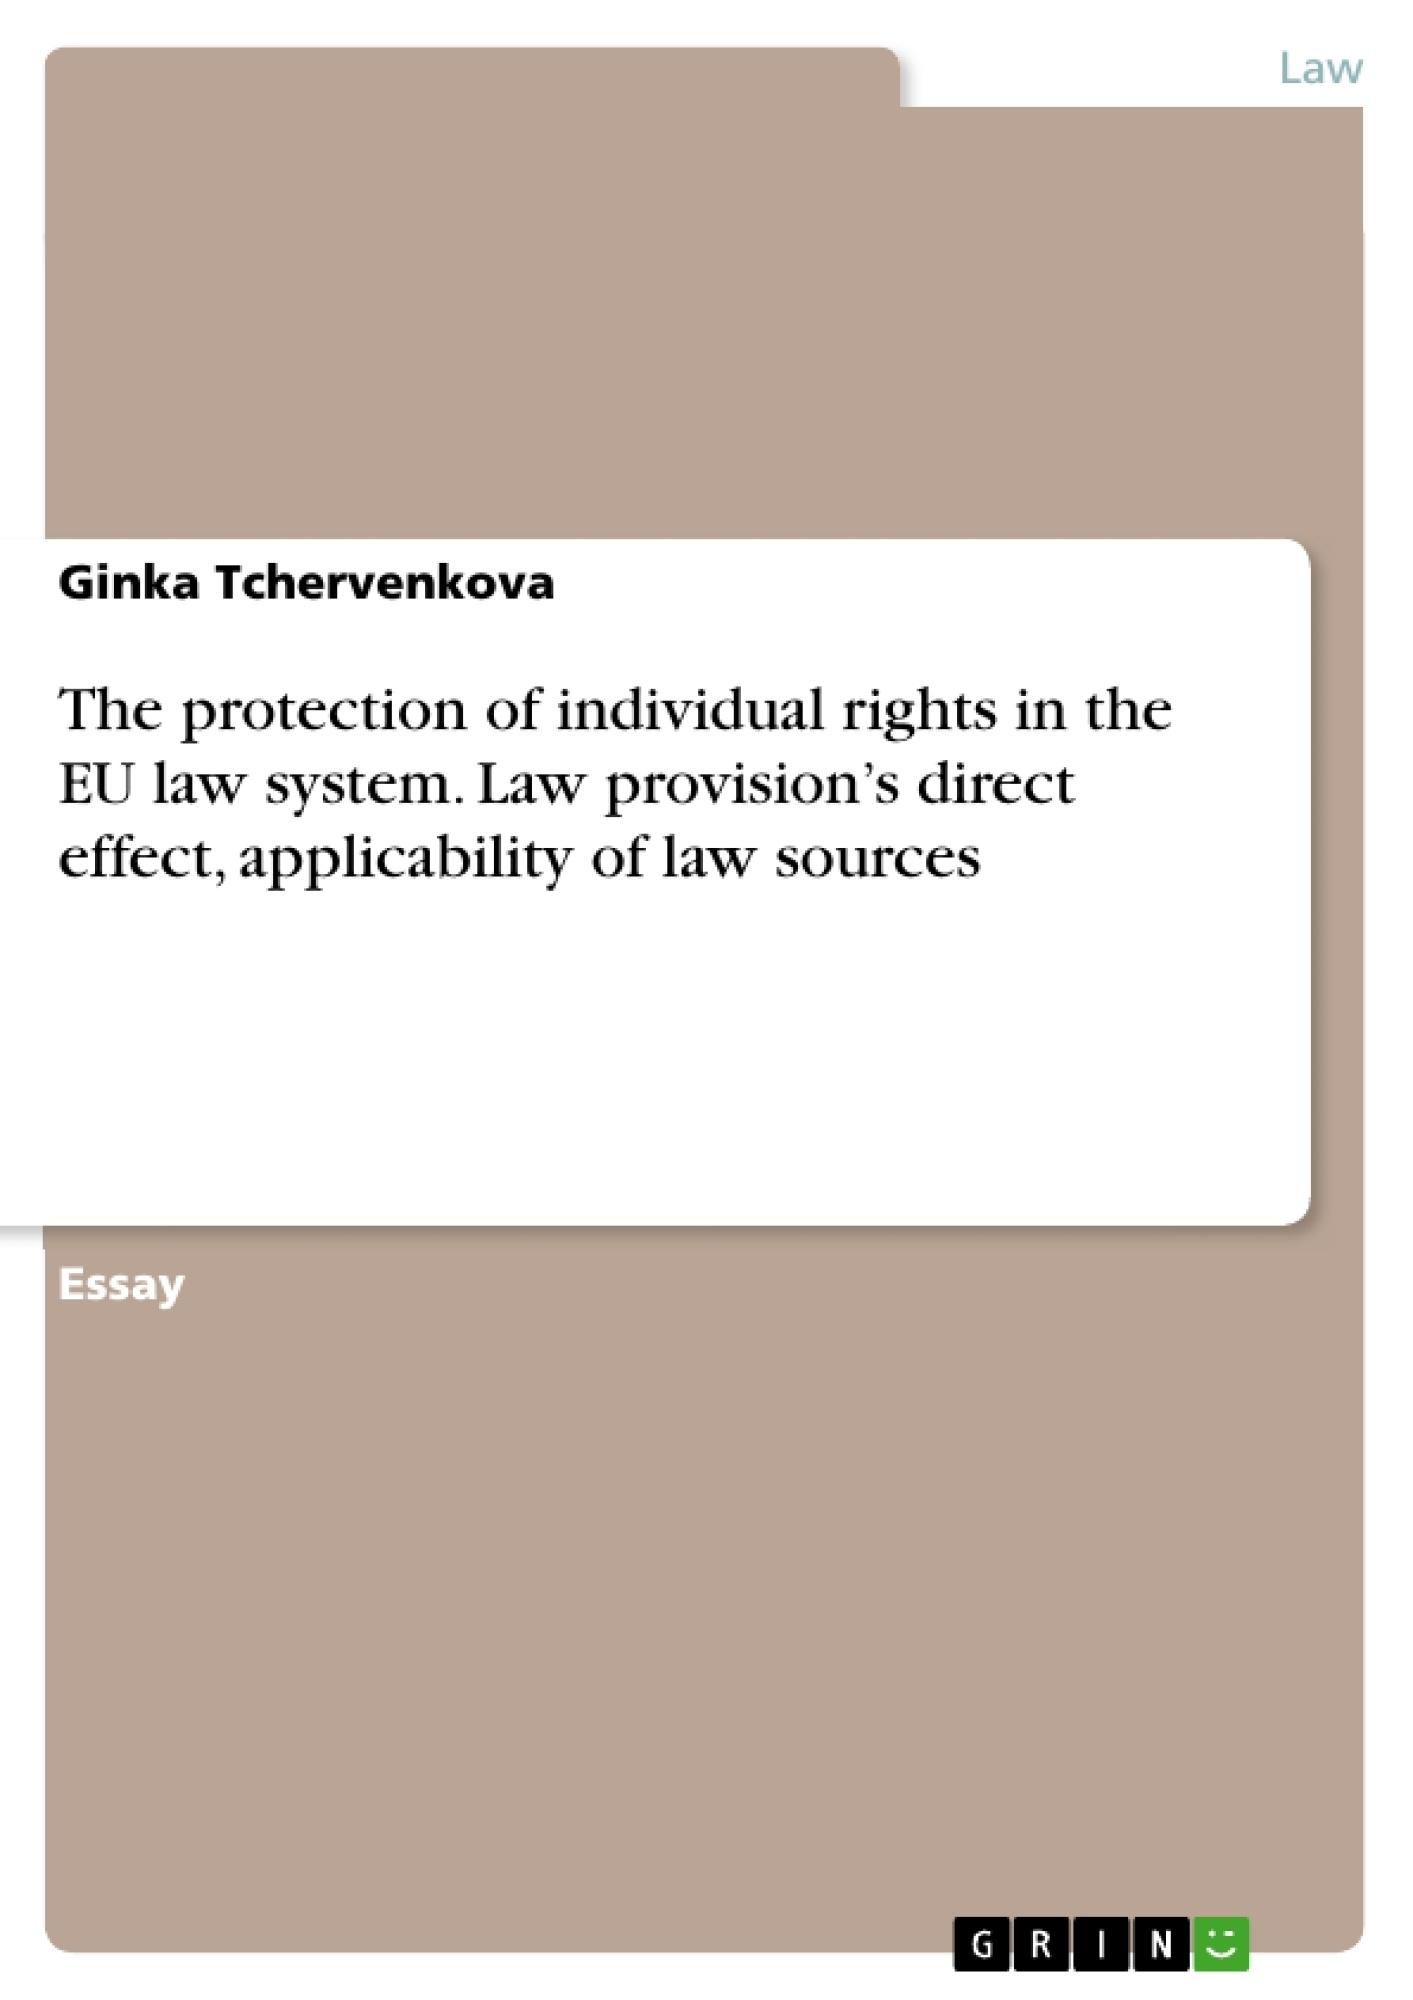 Title: The protection of individual rights in the EU law system. Law provision's direct effect, applicability of law sources